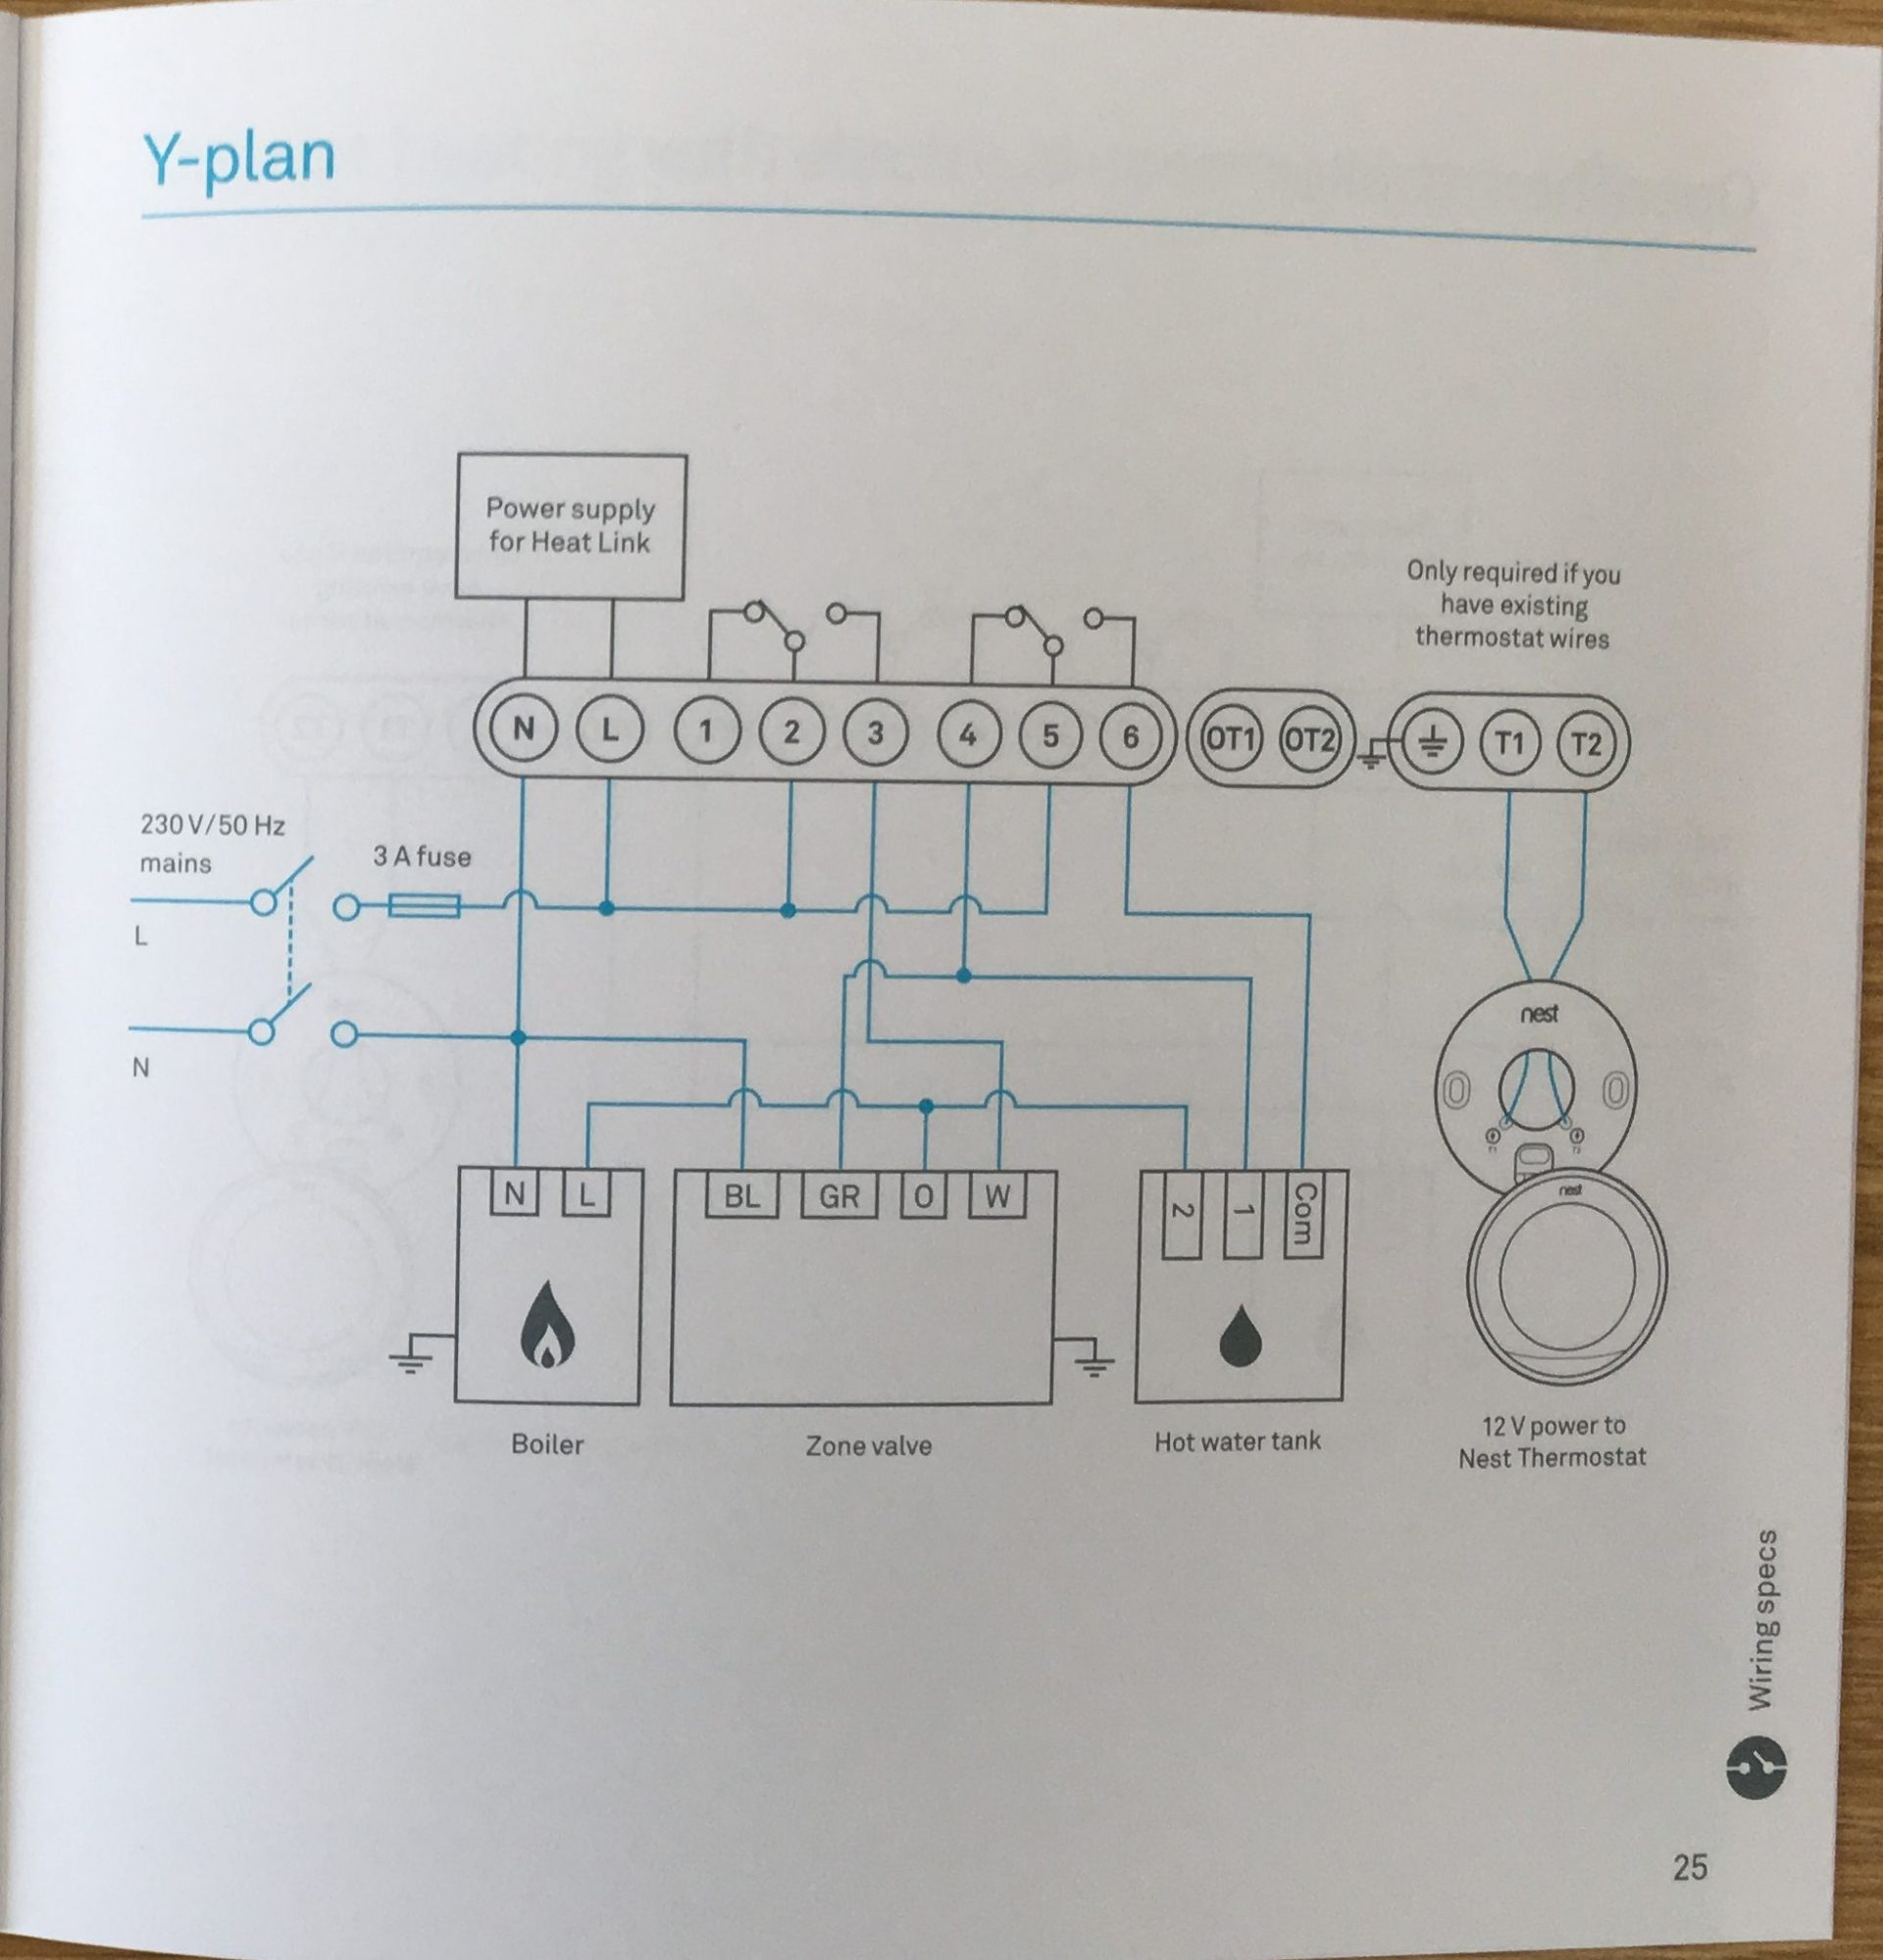 How To Install The Nest Learning Thermostat (3Rd Gen) In A Y-Plan - 3Rd Generation Nest Thermostat Wiring Diagram